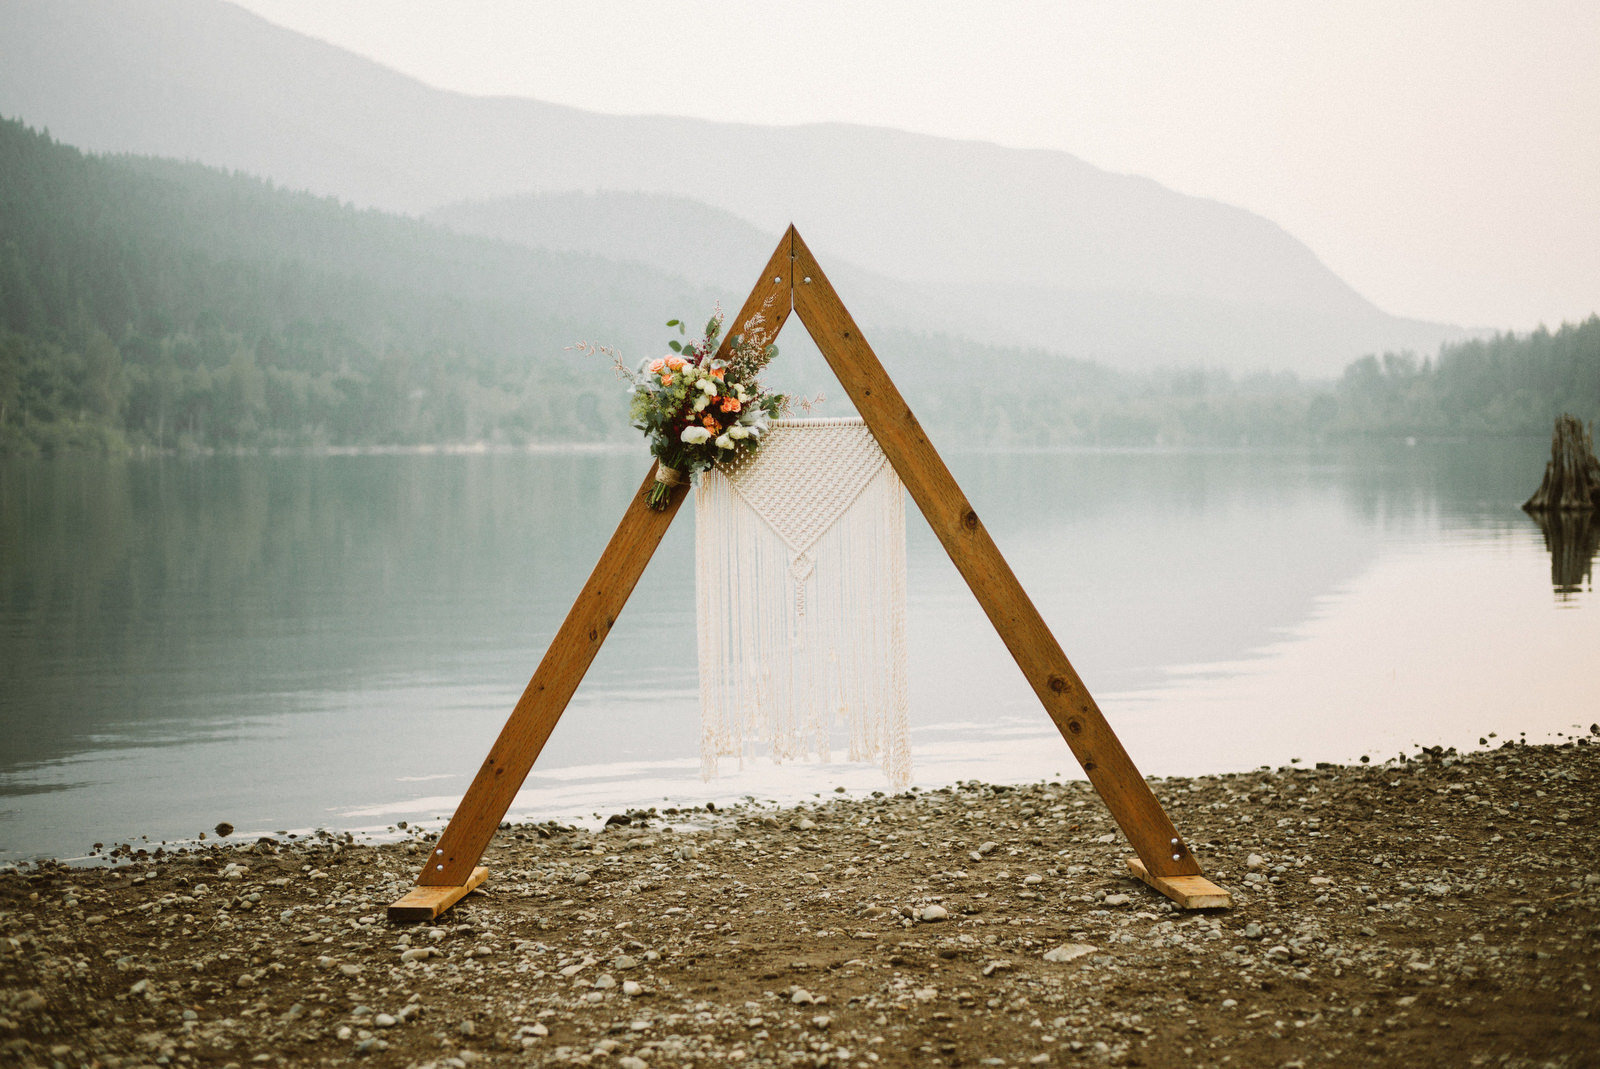 athena-and-camron-seattle-elopement-wedding-benj-haisch-rattlesnake-lake-christian-couple-goals73